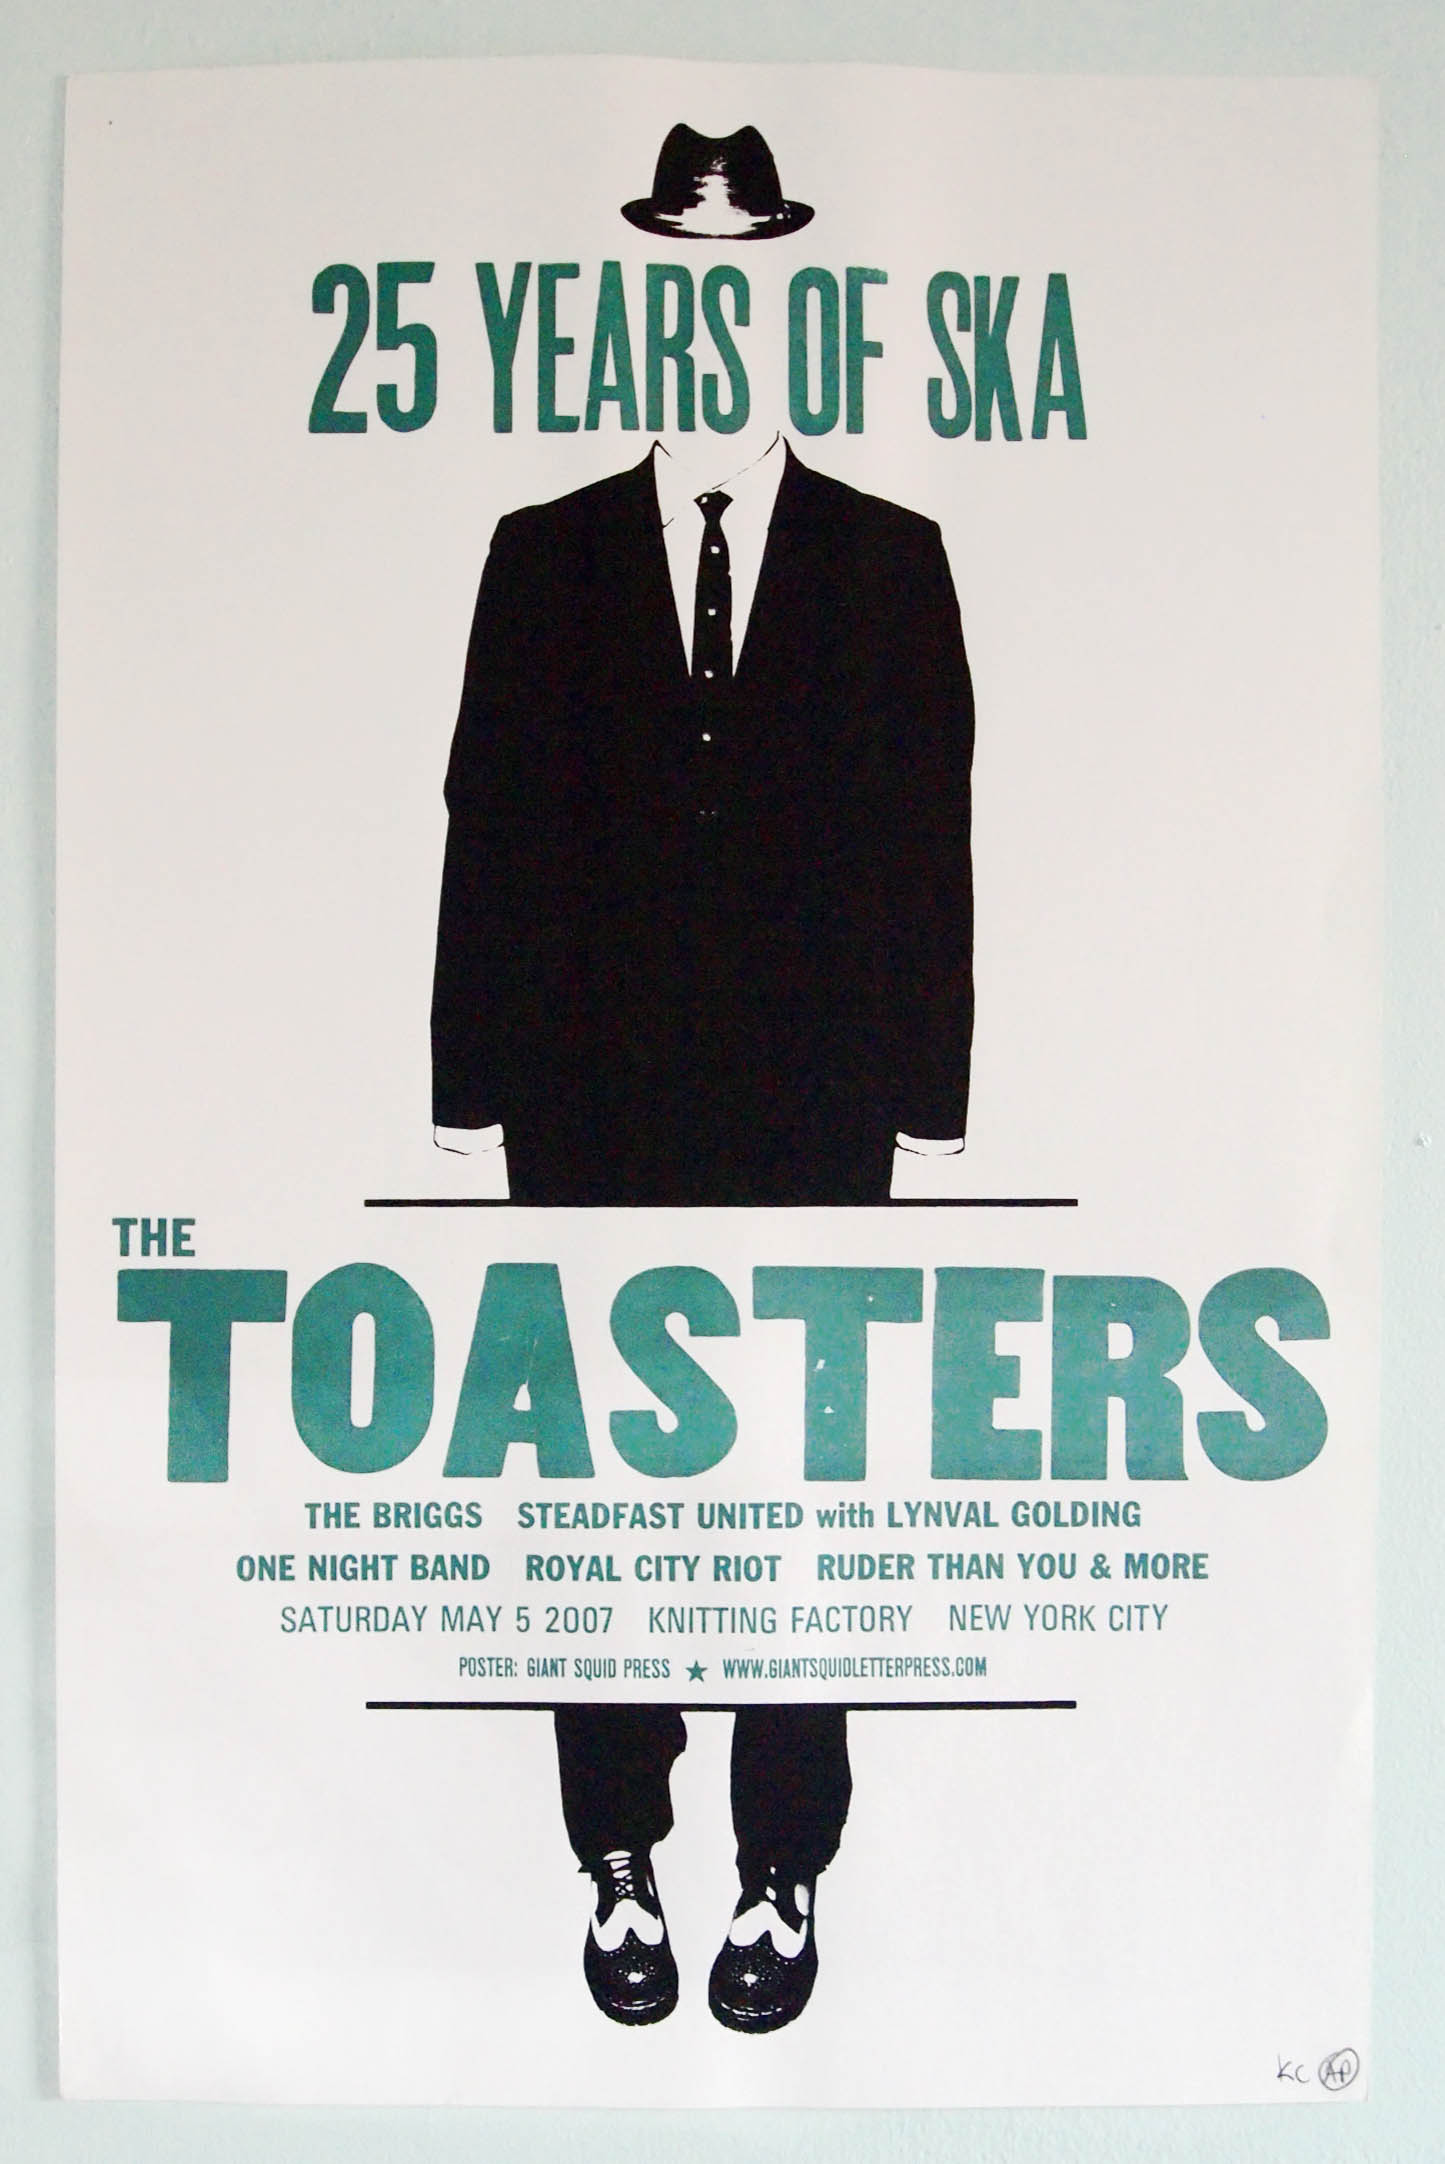 The toasters 25 years of ska concert poster at the Knitting Factory NYC